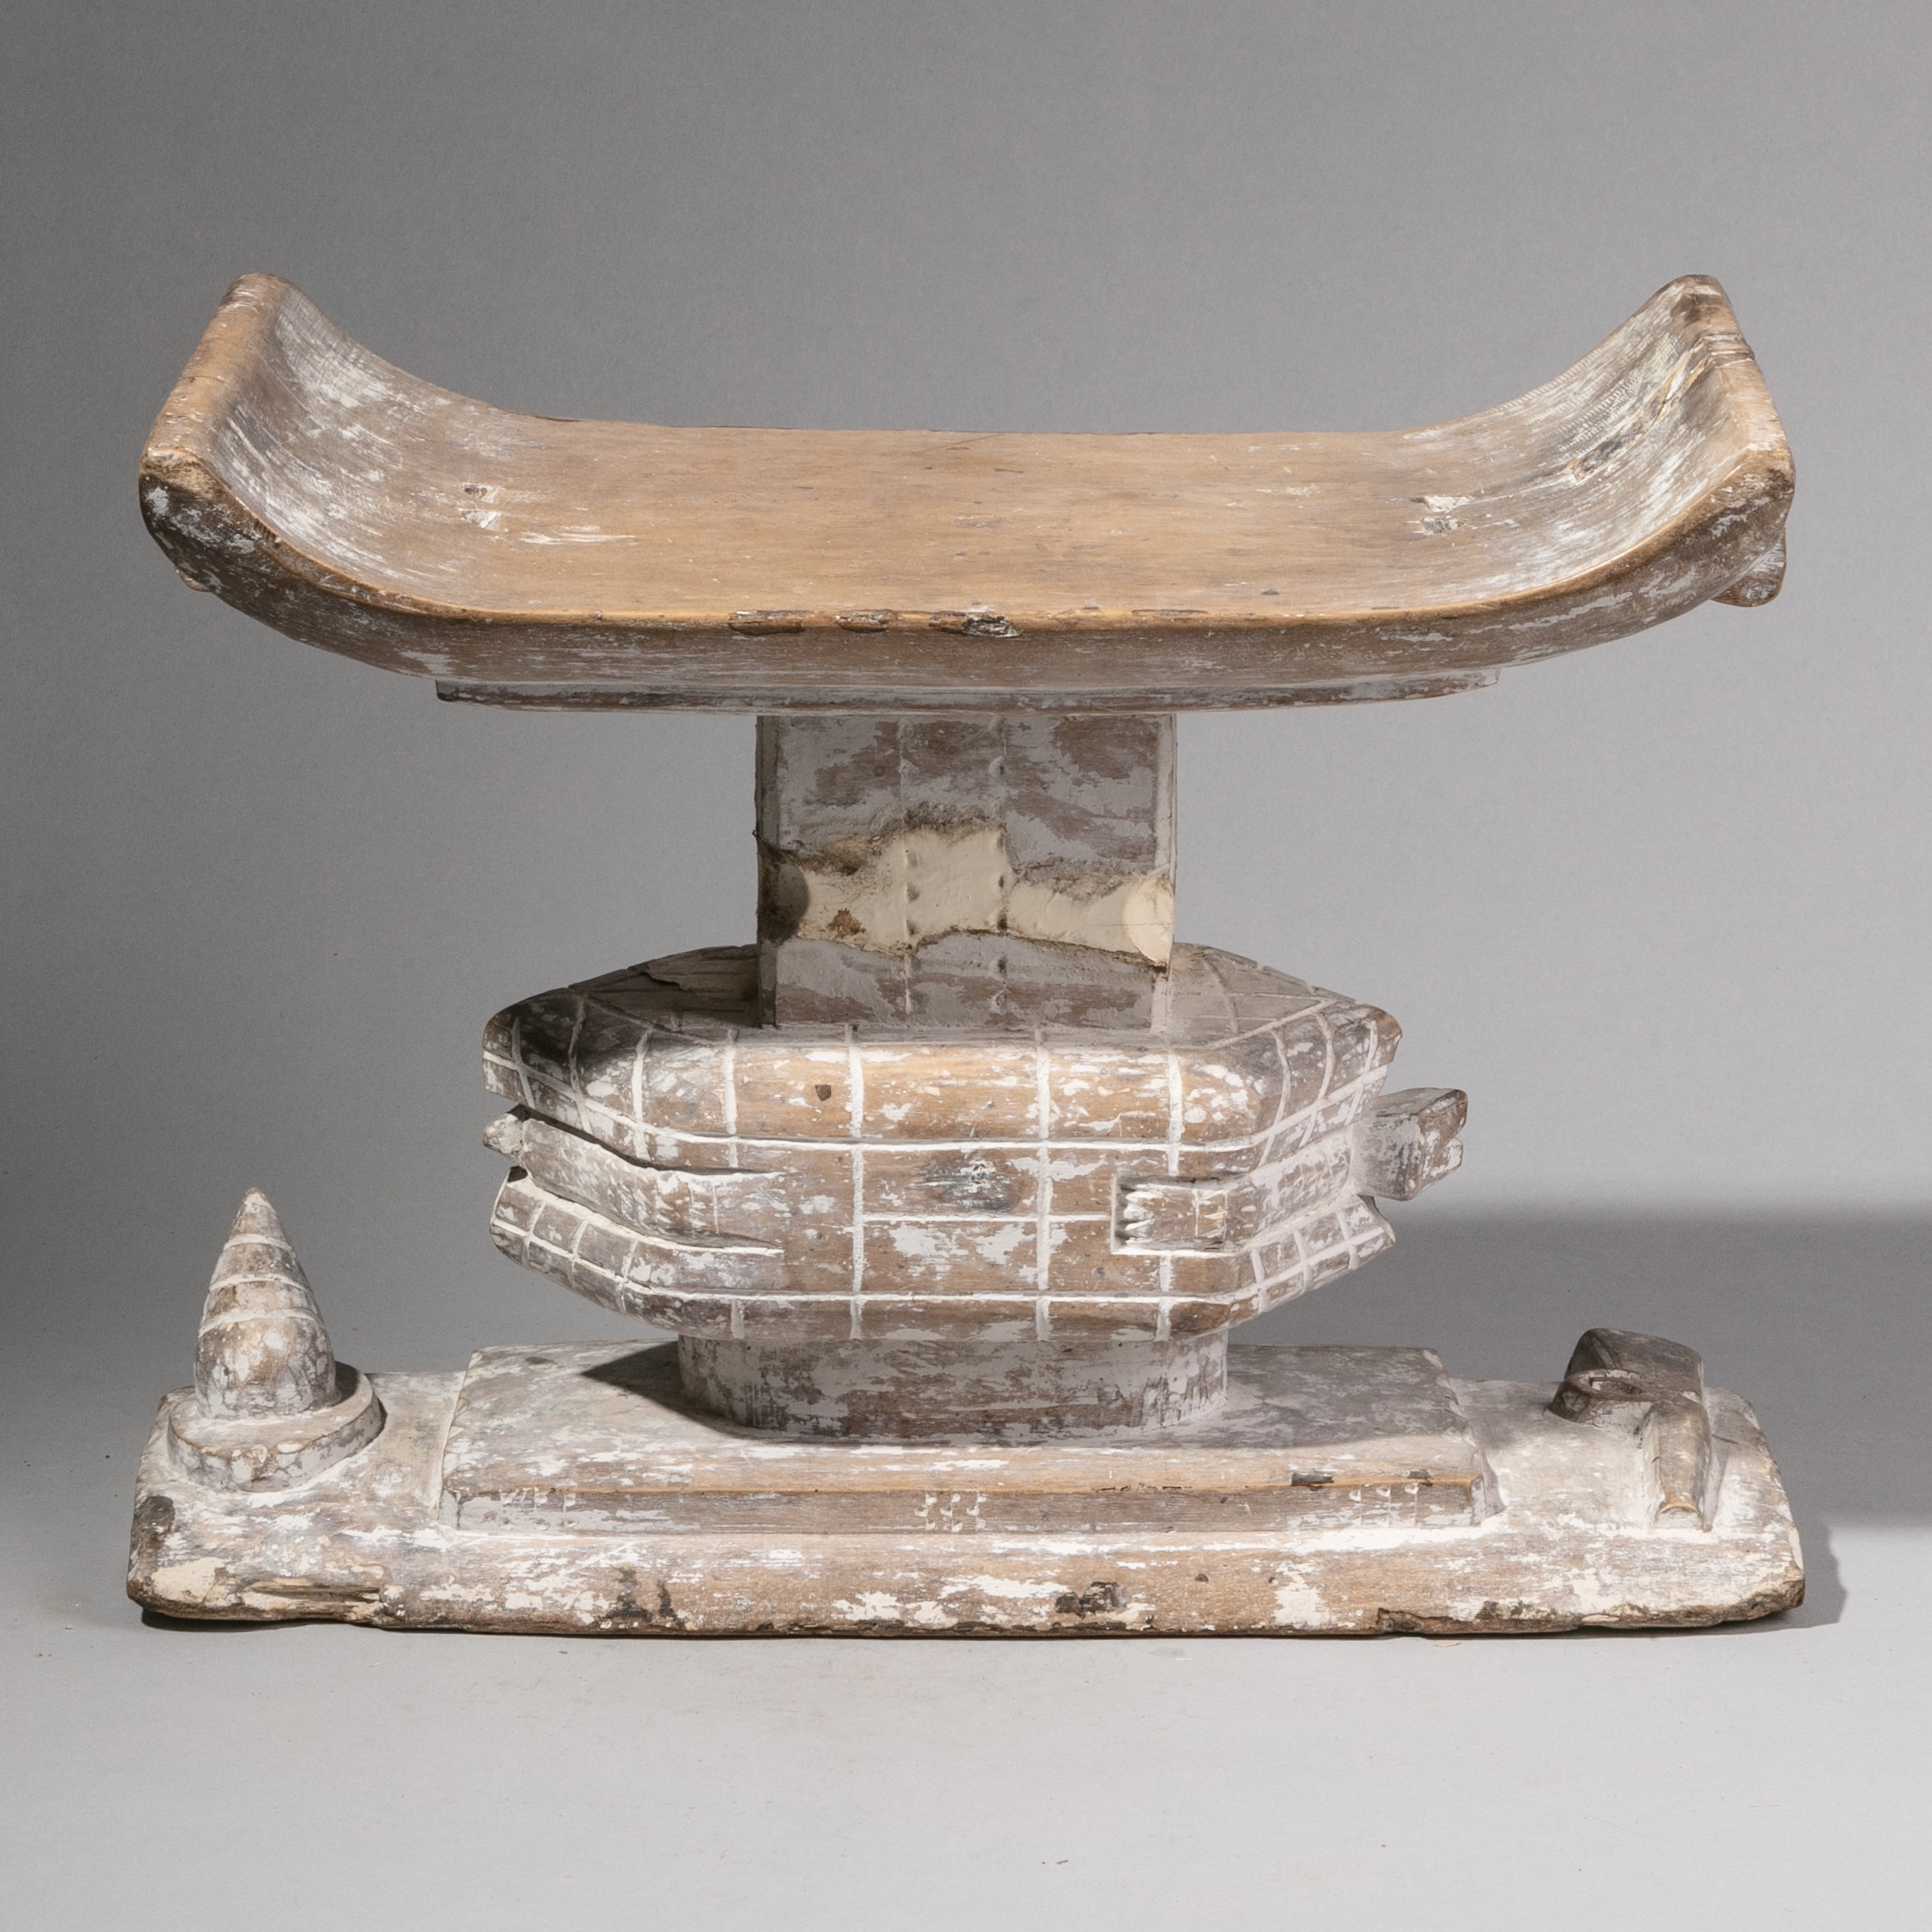 SD A LARGE FETISH STOOL WITH TURTLE + SHELL DESIGN, GHANA ( No 1242 )